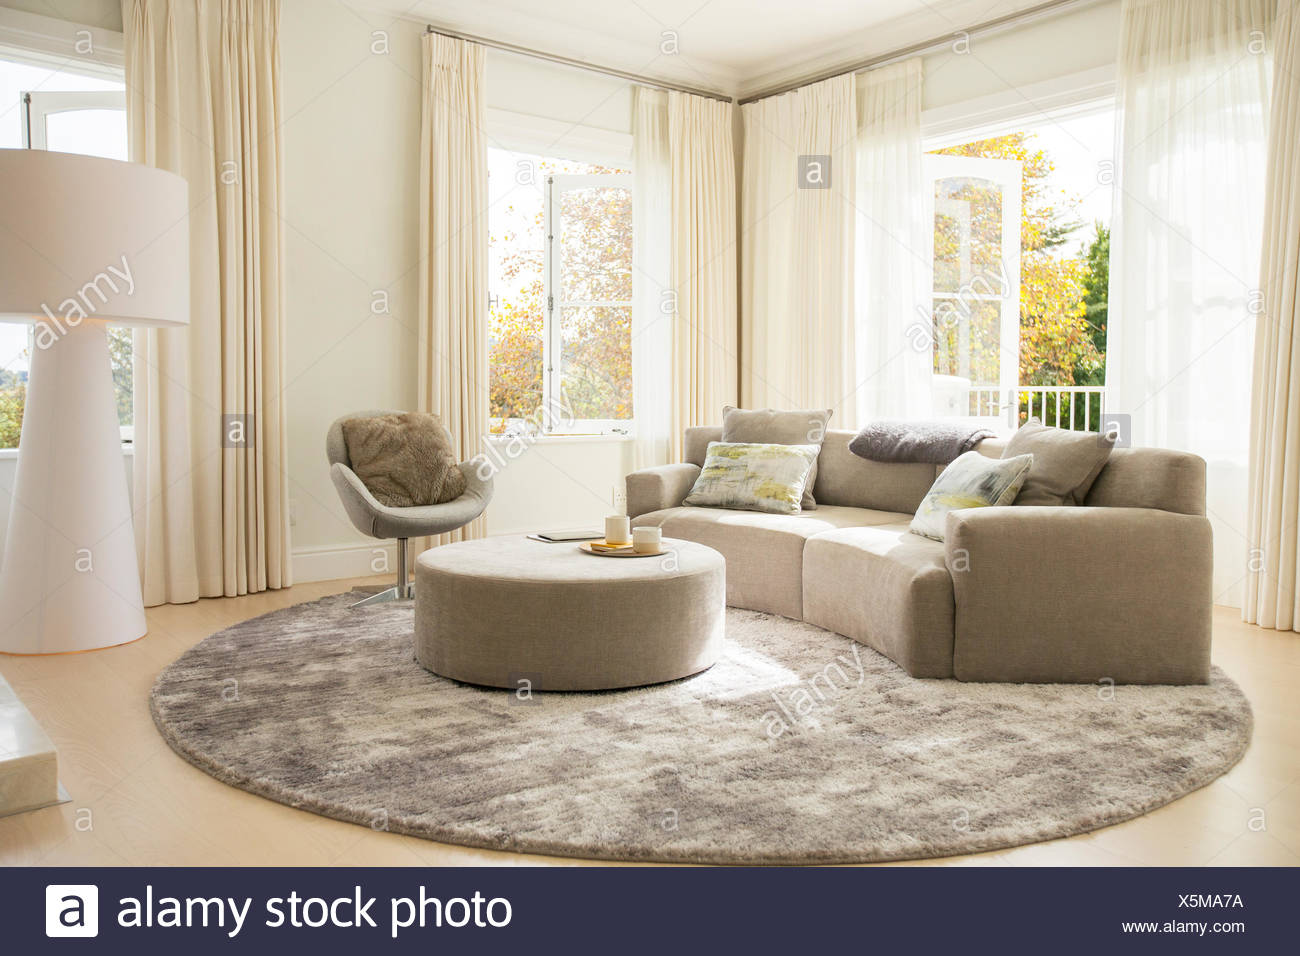 Ottoman Carpet Stock Photos & Ottoman Carpet Stock Images - Alamy